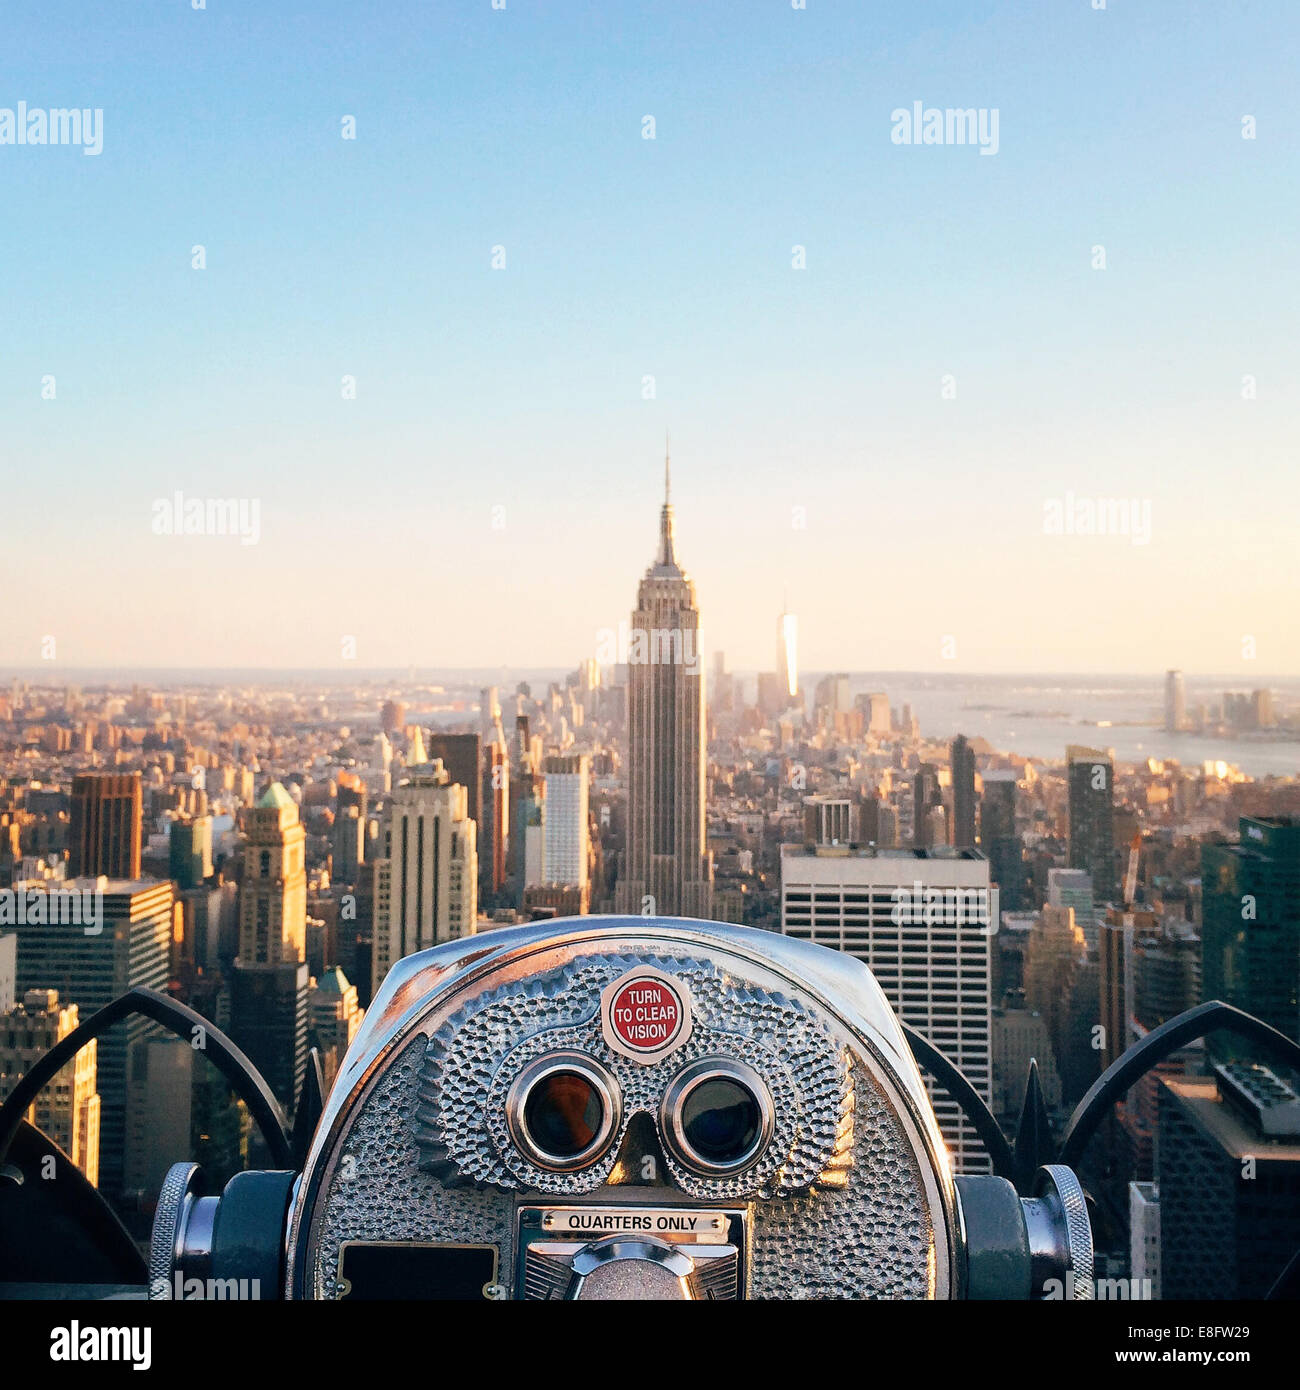 USA, New York State, New York City, View of Empire State Building - Stock Image